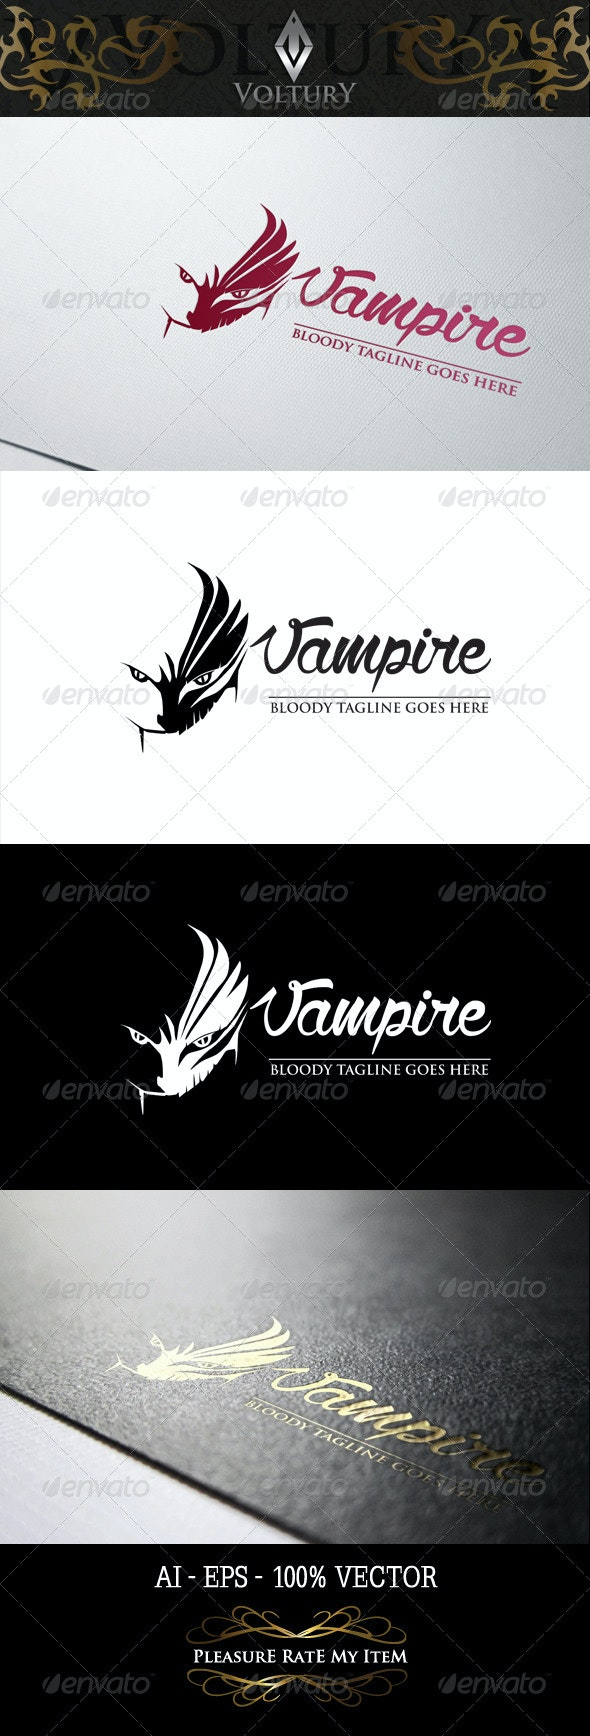 Vampire Logo - Vector Abstract